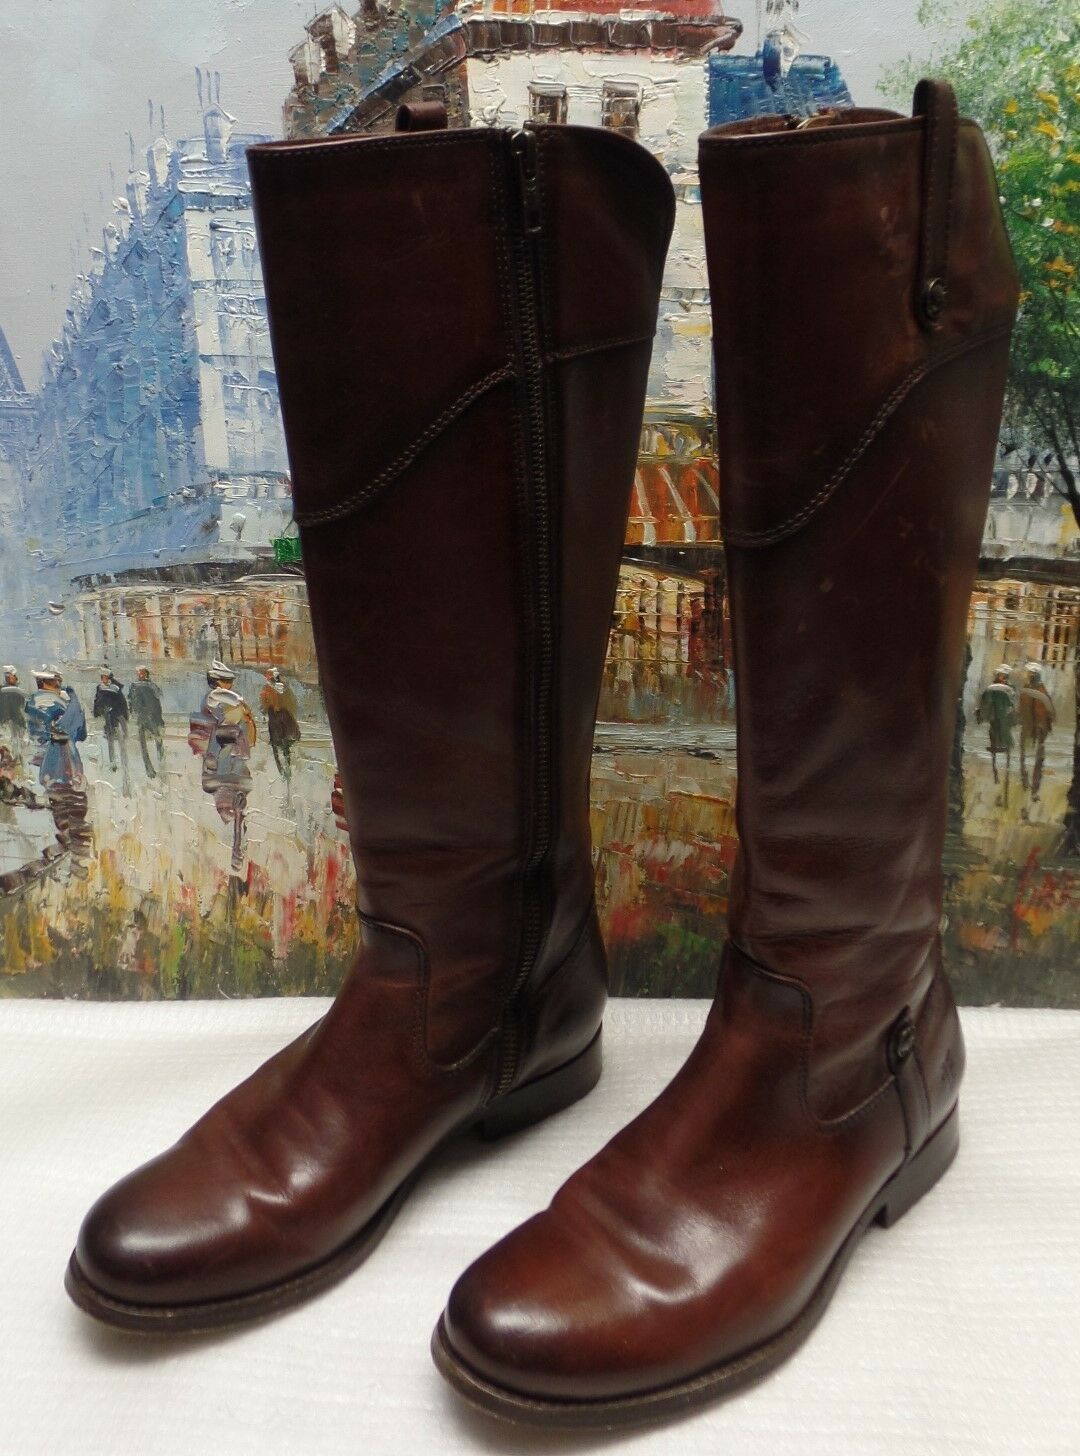 Frye Melissa onglet Bottes hautes-Taille 5.5B -  427.95